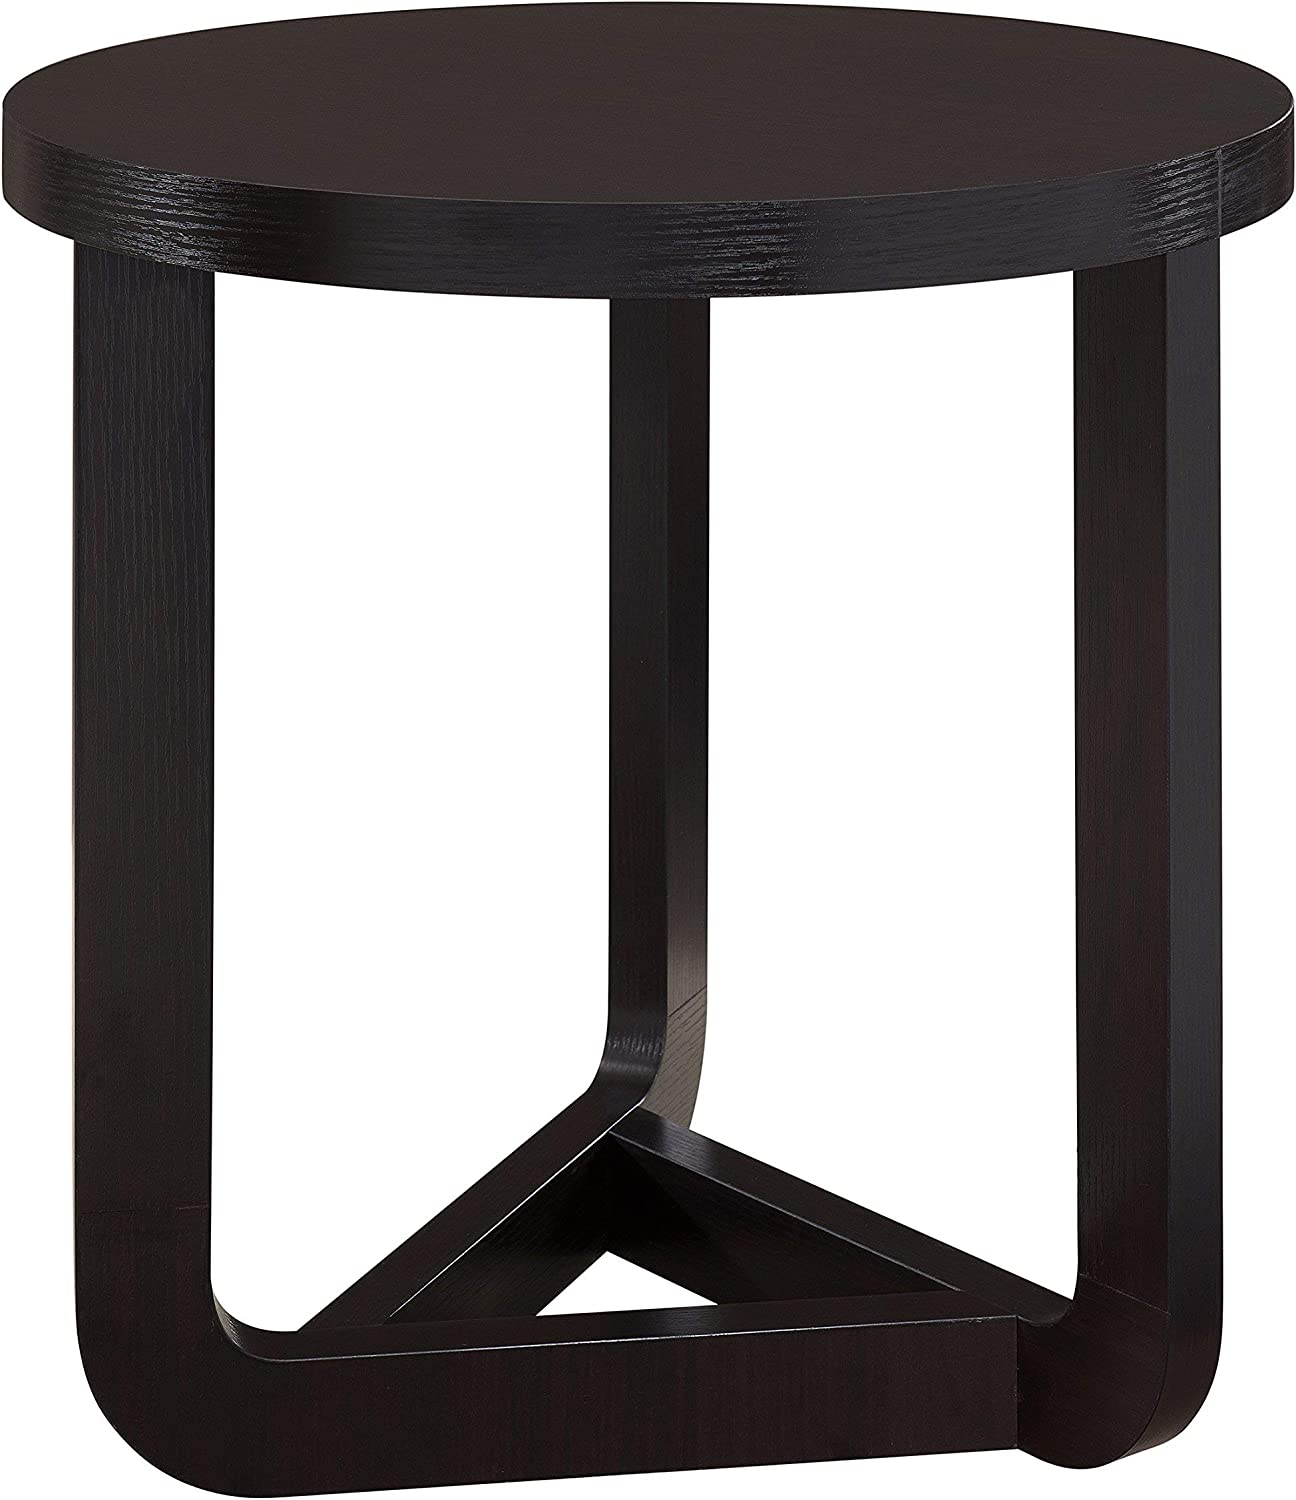 Furniture of America Hovacs Modern Round End Table, Cappuccino